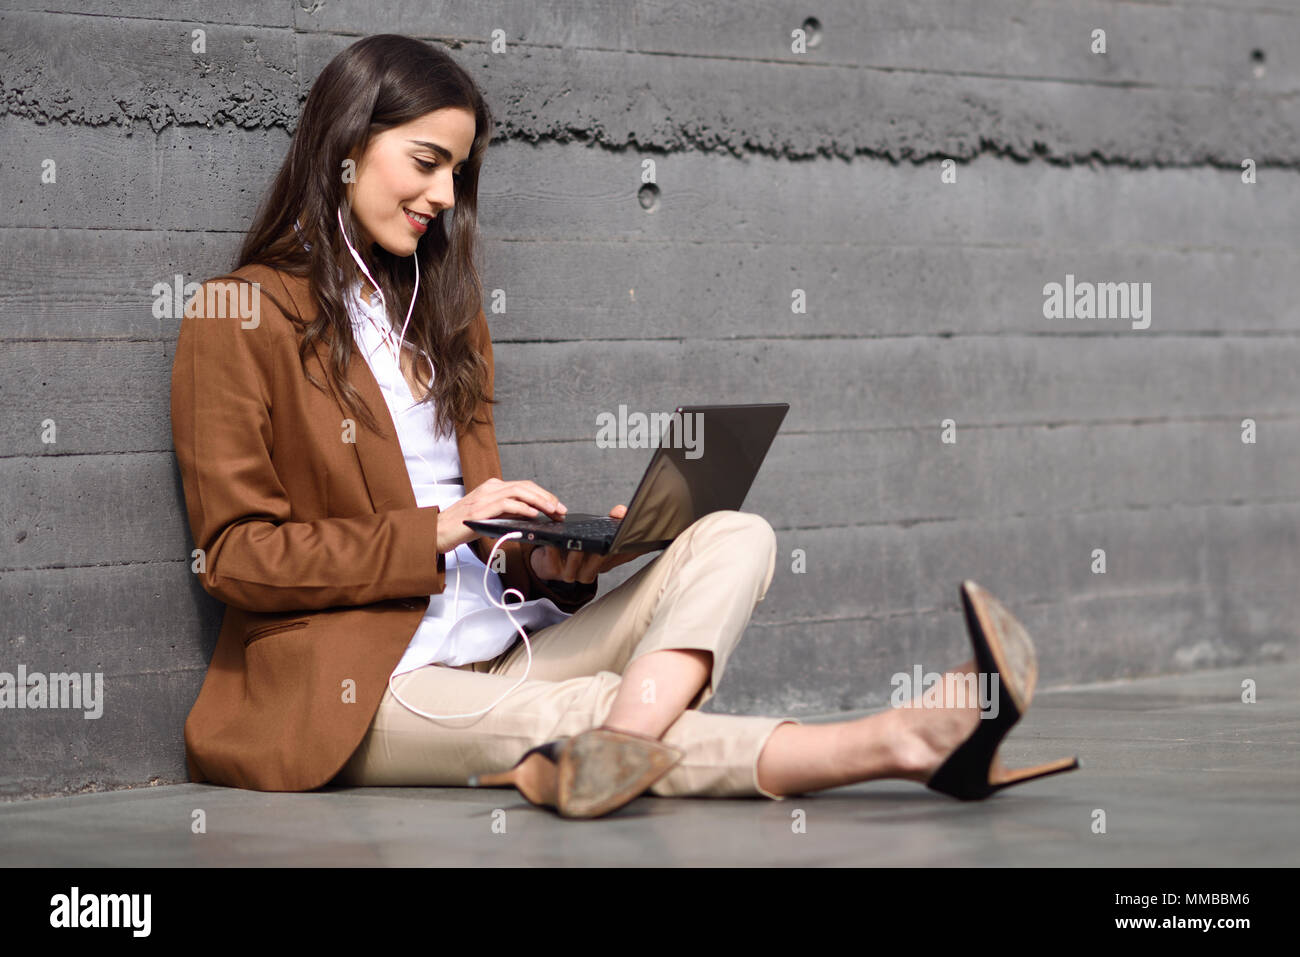 Young businesswoman sitting on floor looking at her laptop computer. Beautiful woman wearing formal wear using earphones. - Stock Image